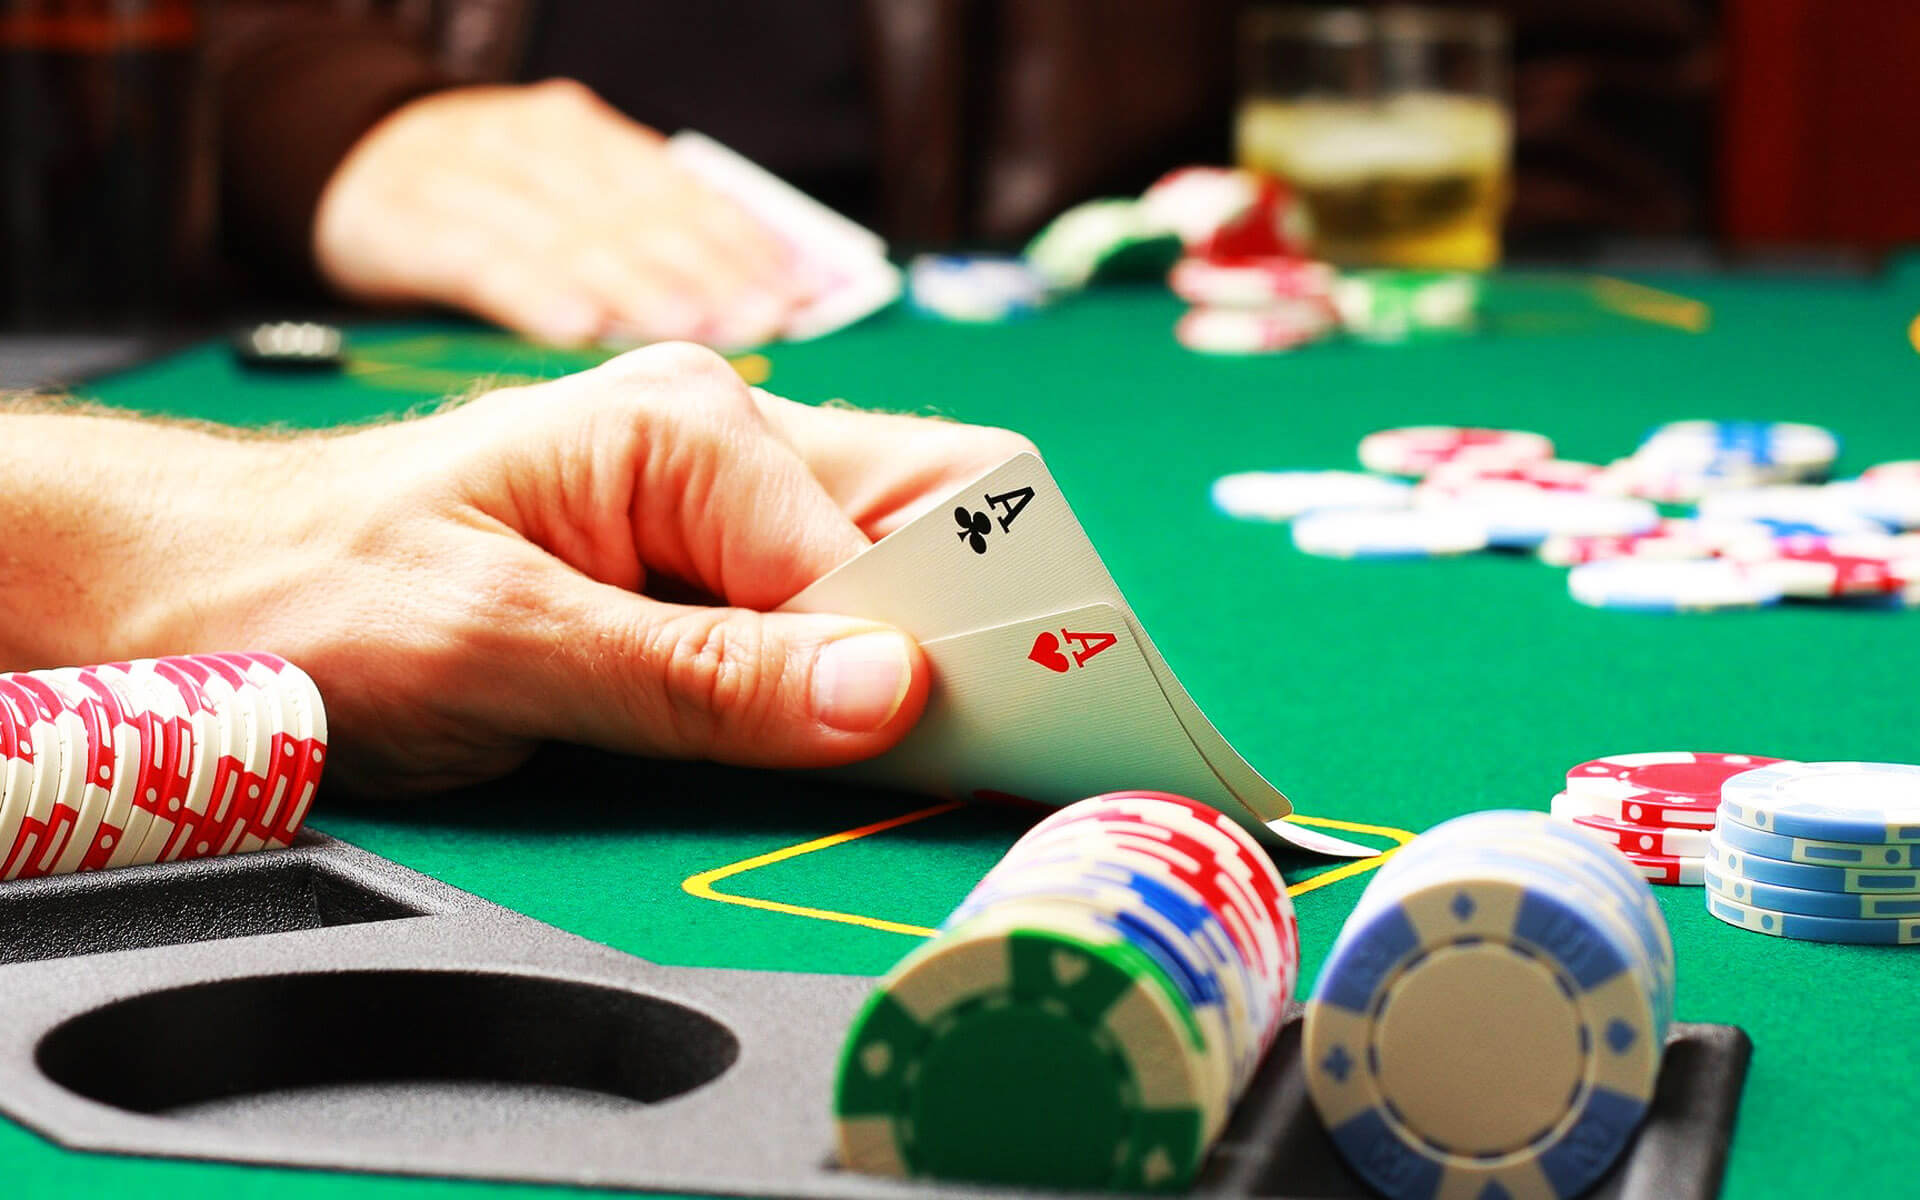 Craps cold table system